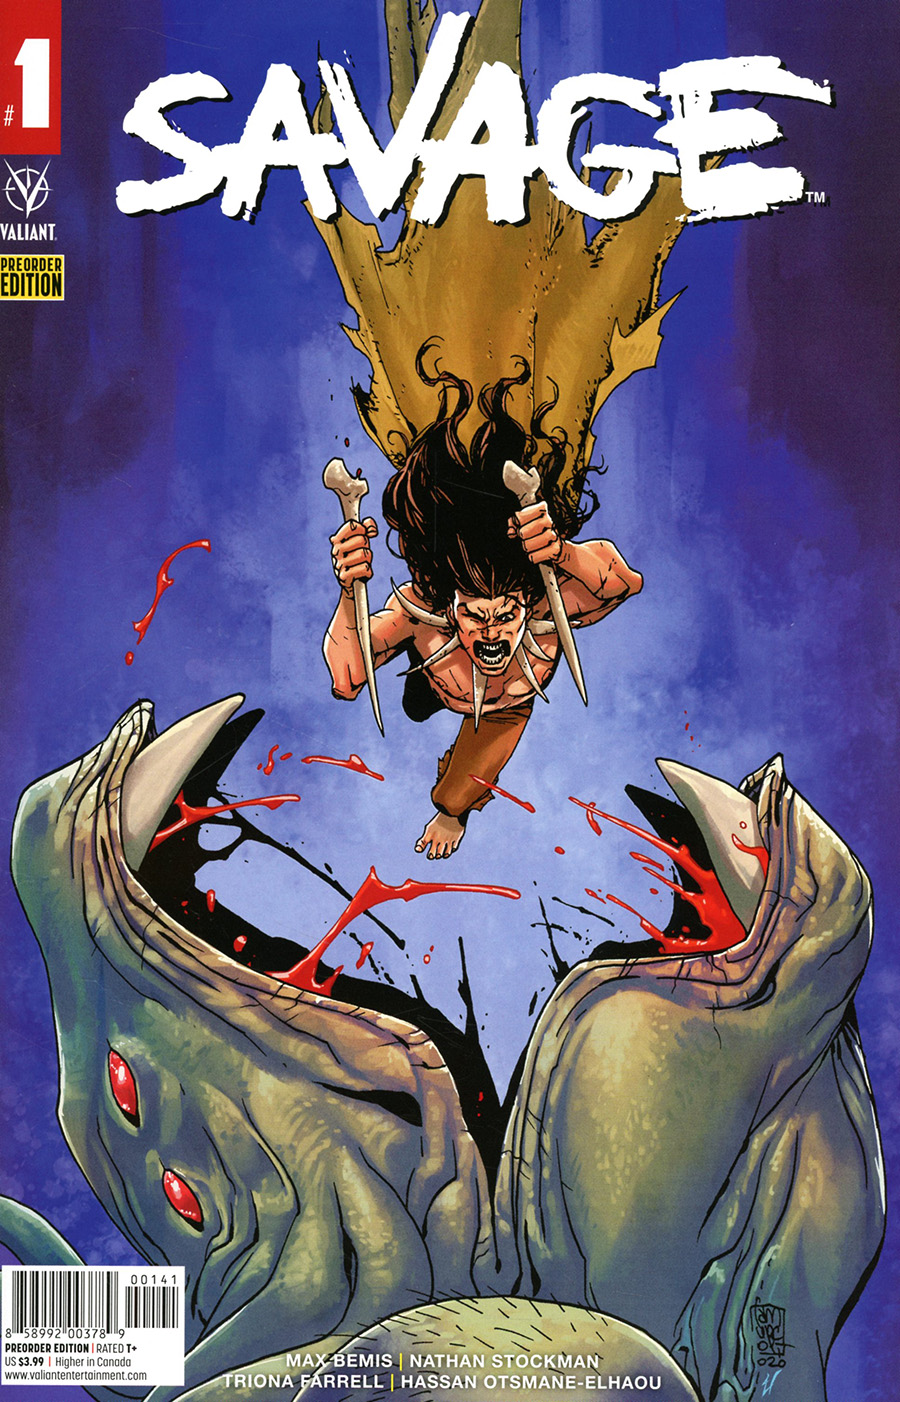 Savage Vol 2 #1 Cover C Variant Pre-Order Edition - RESOLICITED